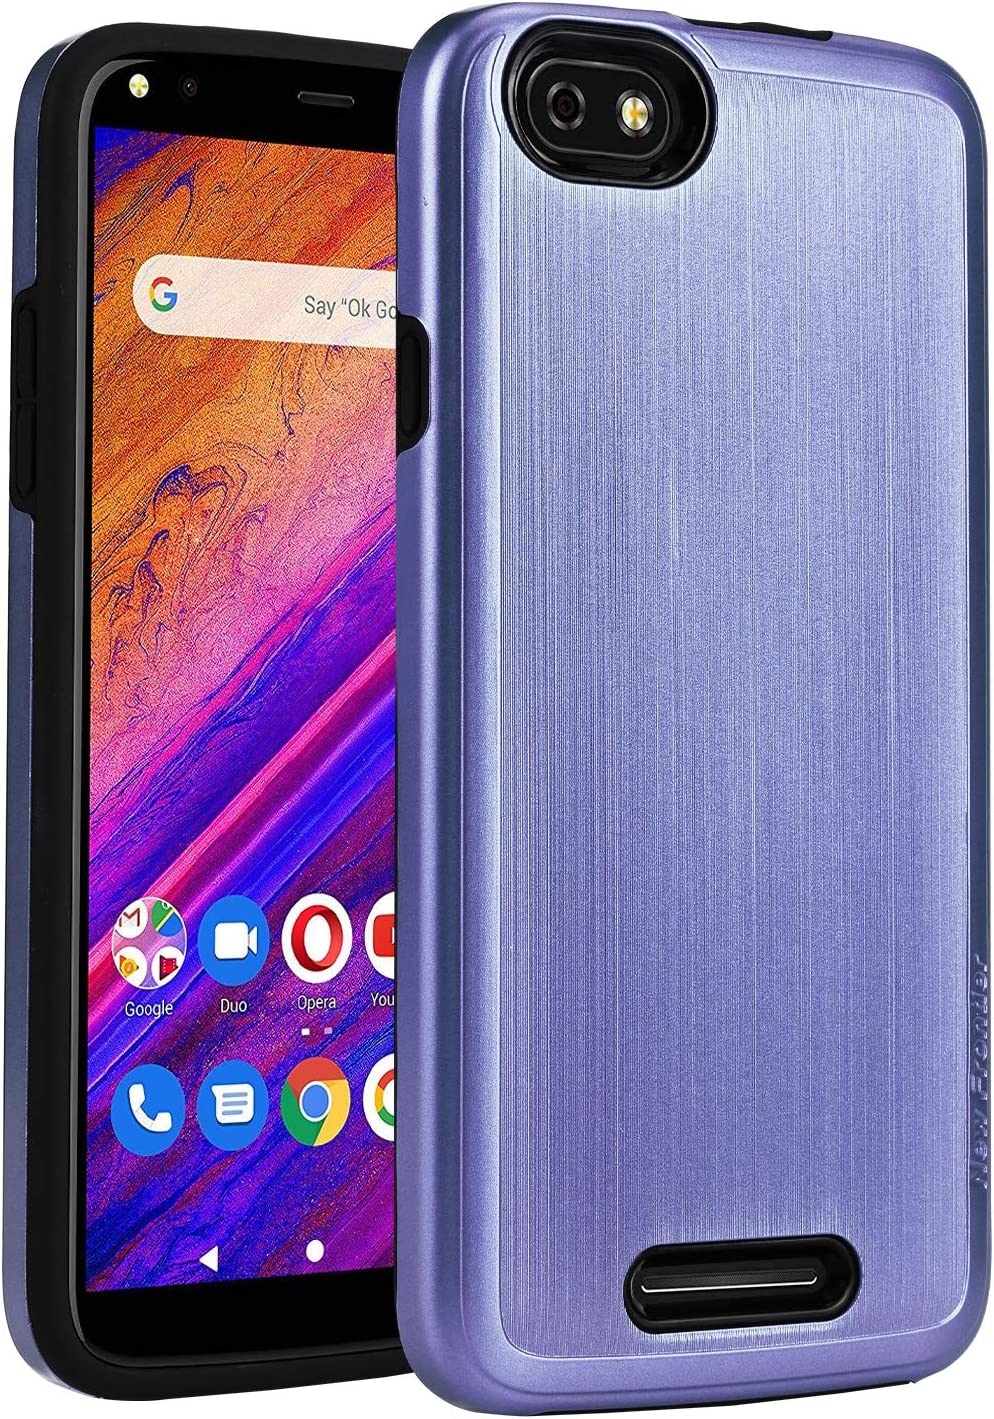 BLU Studio Mega 2019 Case,NEW FRONTIER 100% Slim-Fit [Merge] Strong Protective Shock Proof Dual Layer Precise Cutouts Bumper Style Phone Case for BLU Studio Mega 2019 (Purple)